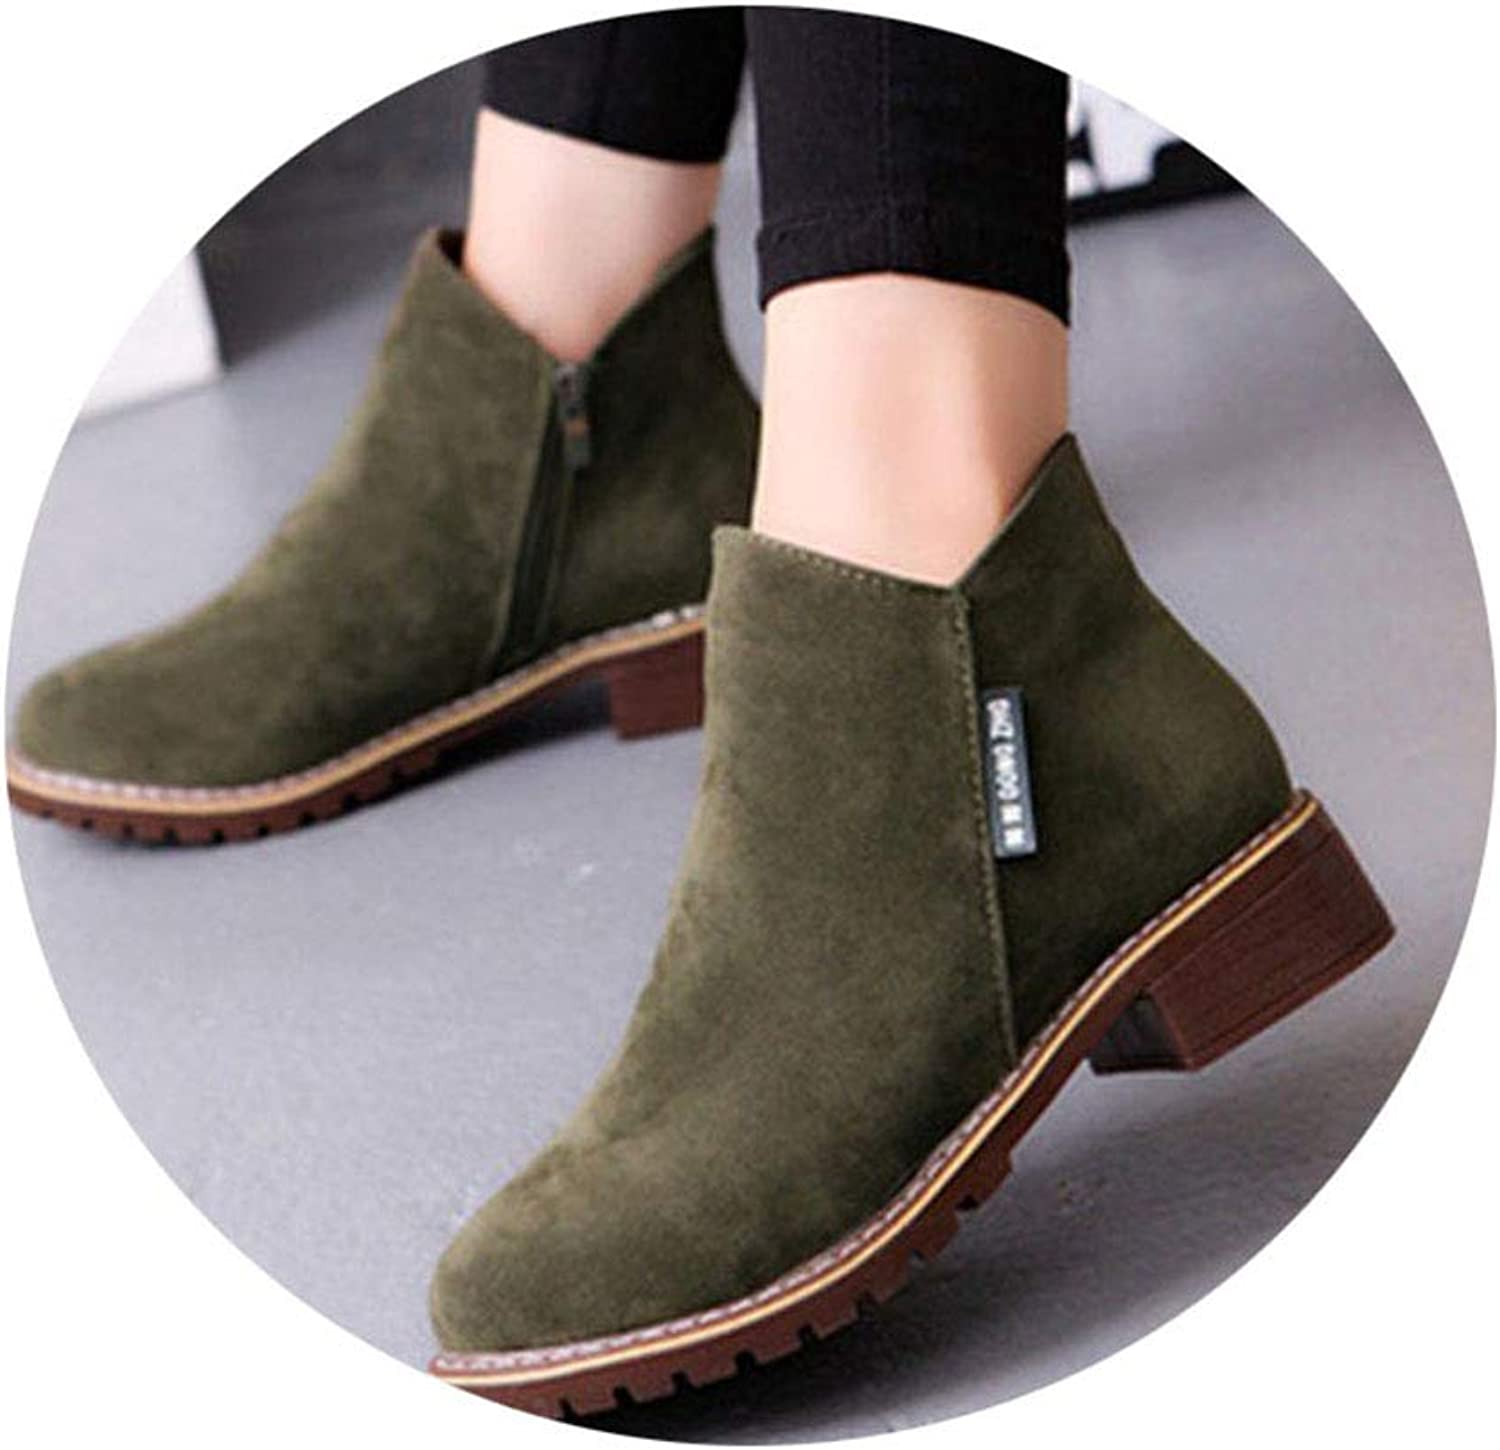 Friedman 2018 Autumn Handmade Genuine Leather Flat Boots Retro Martin Boots Side Zipper Leisure Fashion Ankle Boots,3 colors NO.73